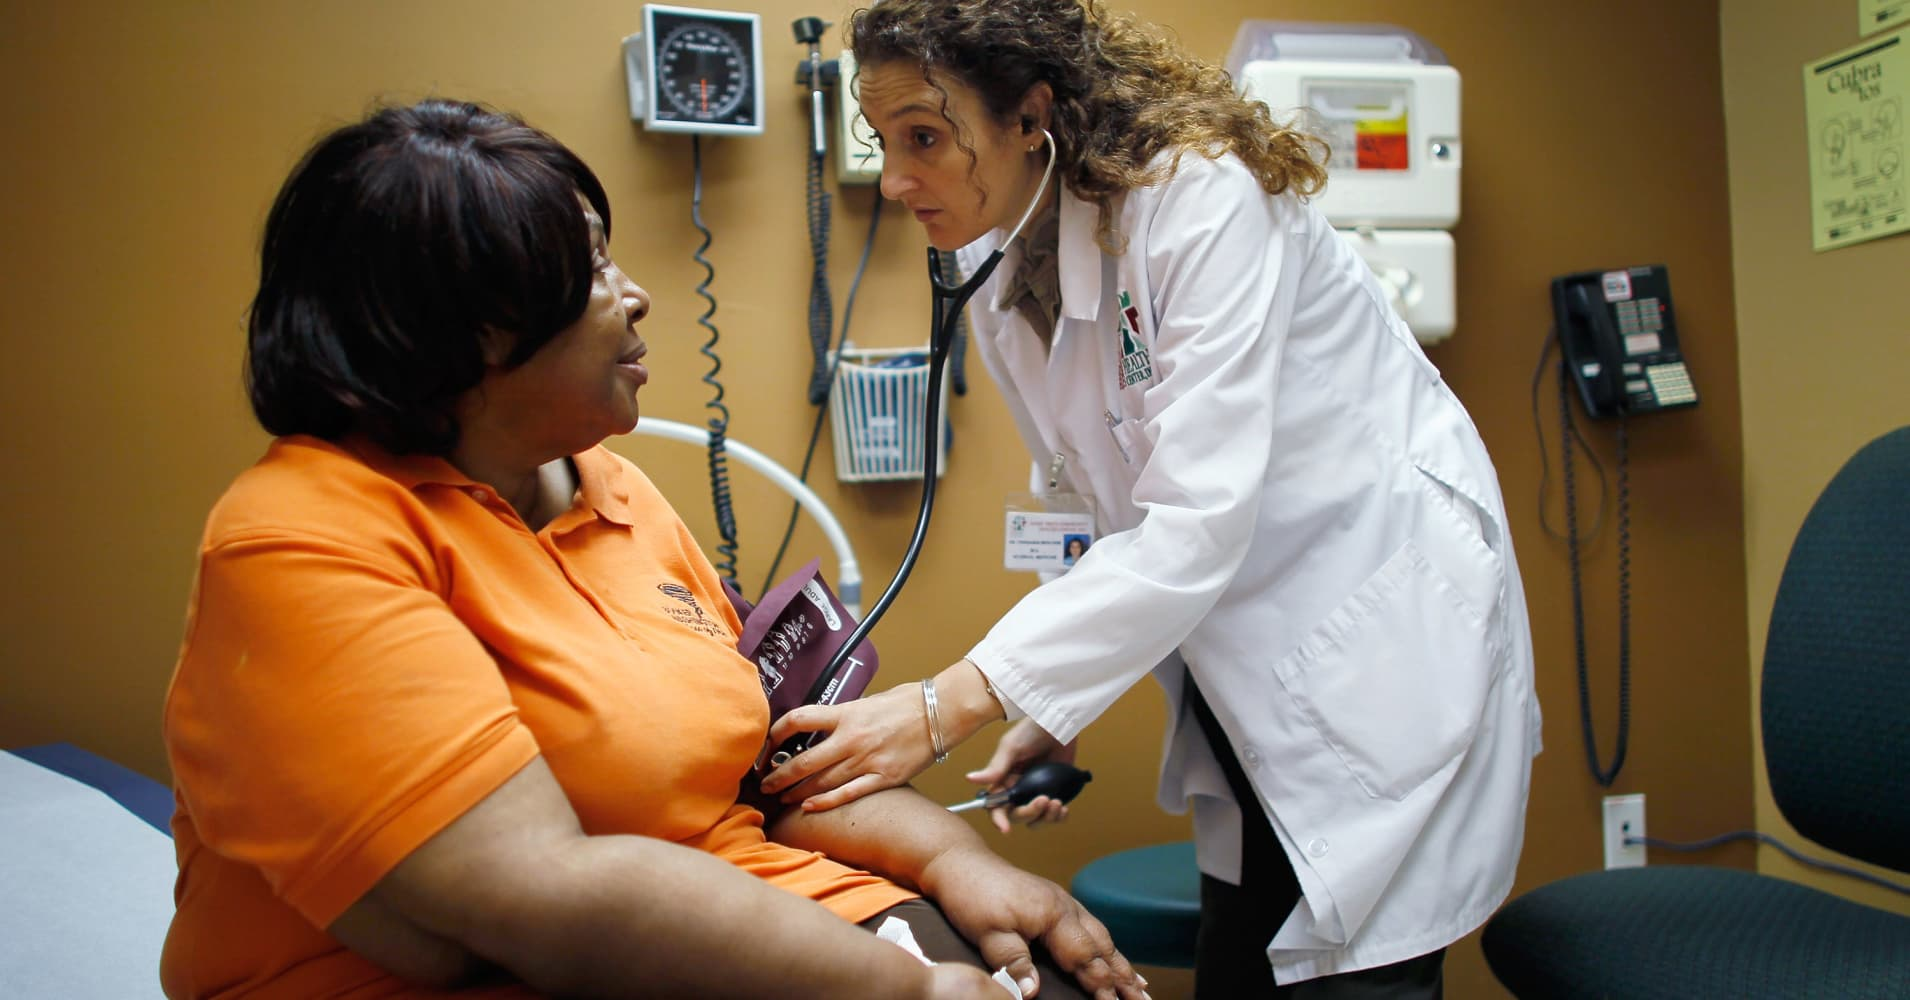 A woman who said she had a pre-existing condition that made it impossible to find insurance that would cover her until the Affordable Care Act, is examined by a doctor during a routine checkup at a community health clinic in Miami, Florida.